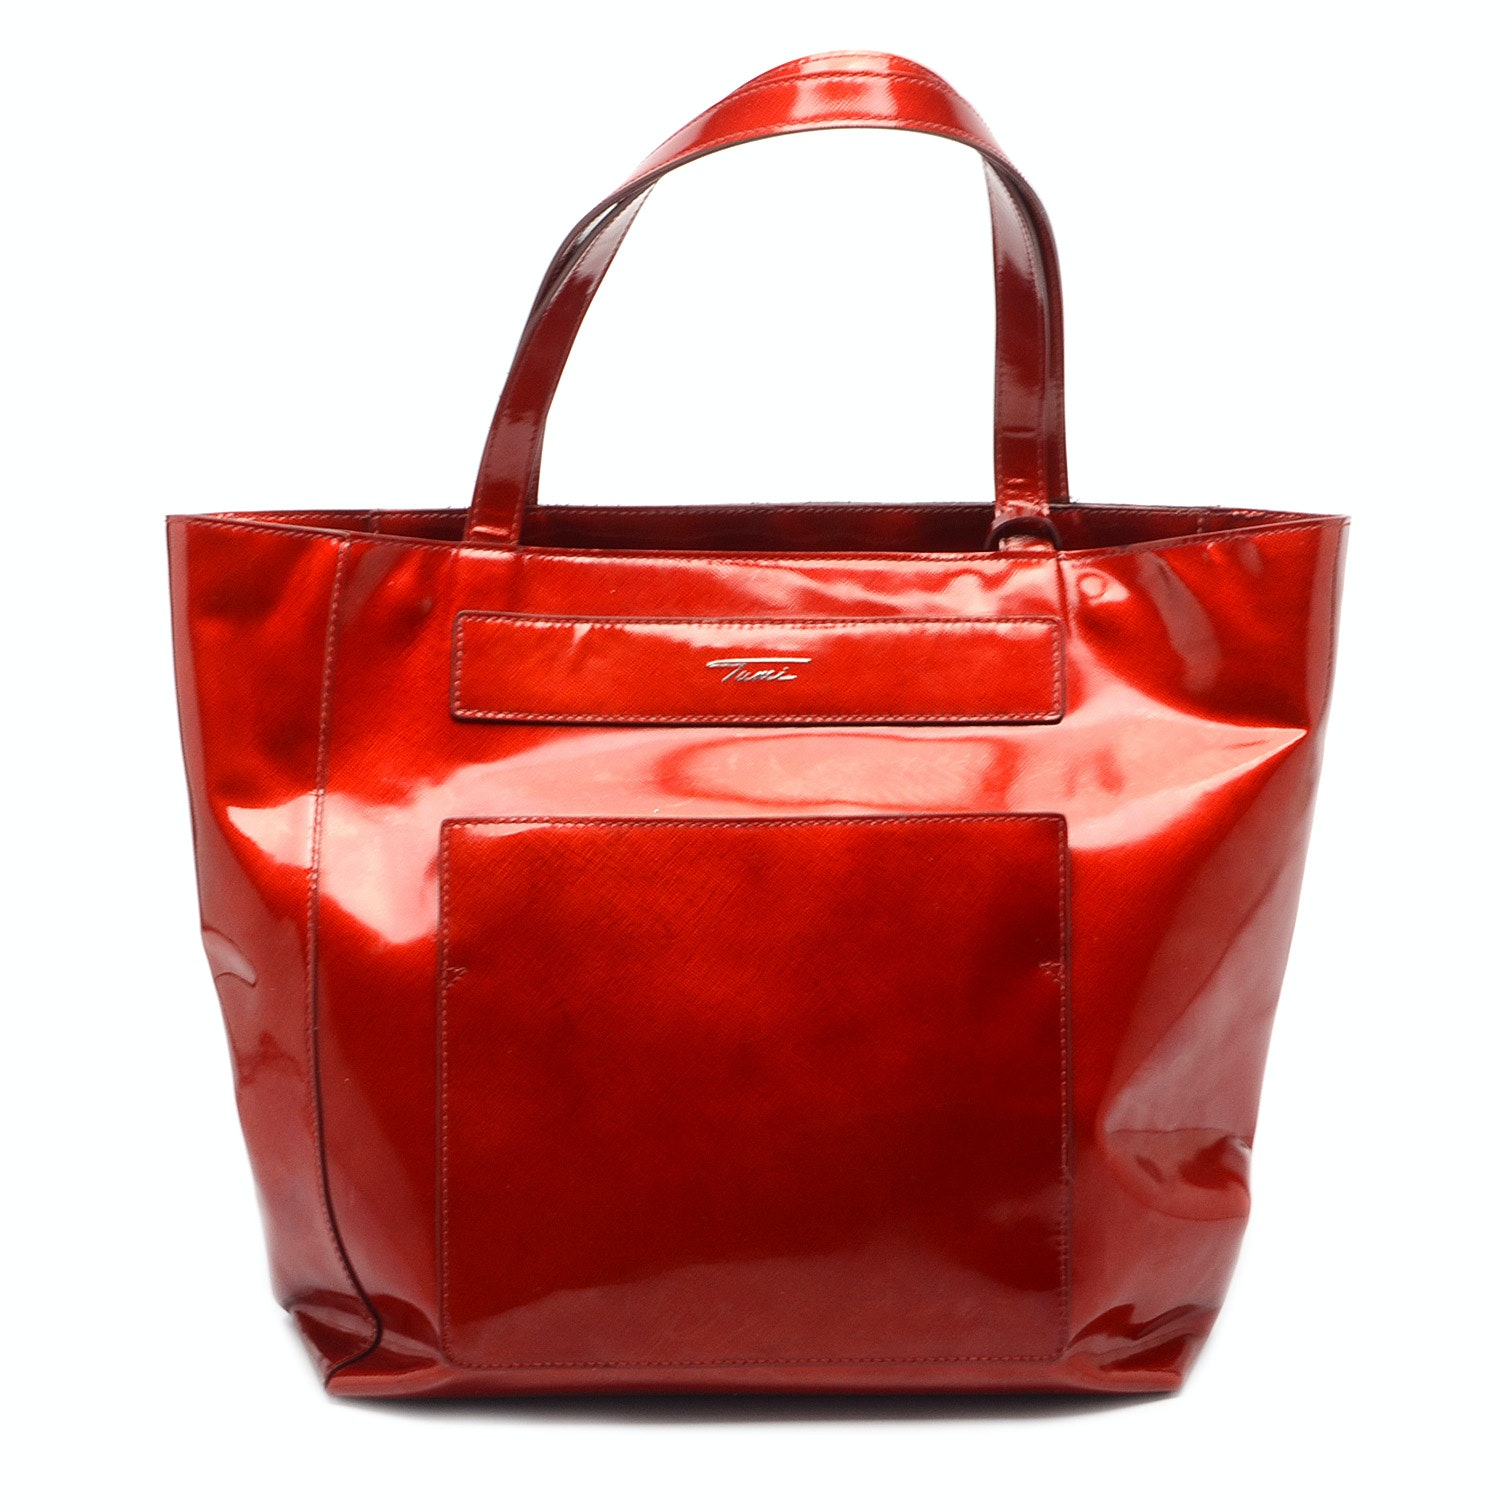 Red Tumi Tote Bag with Attached Purse